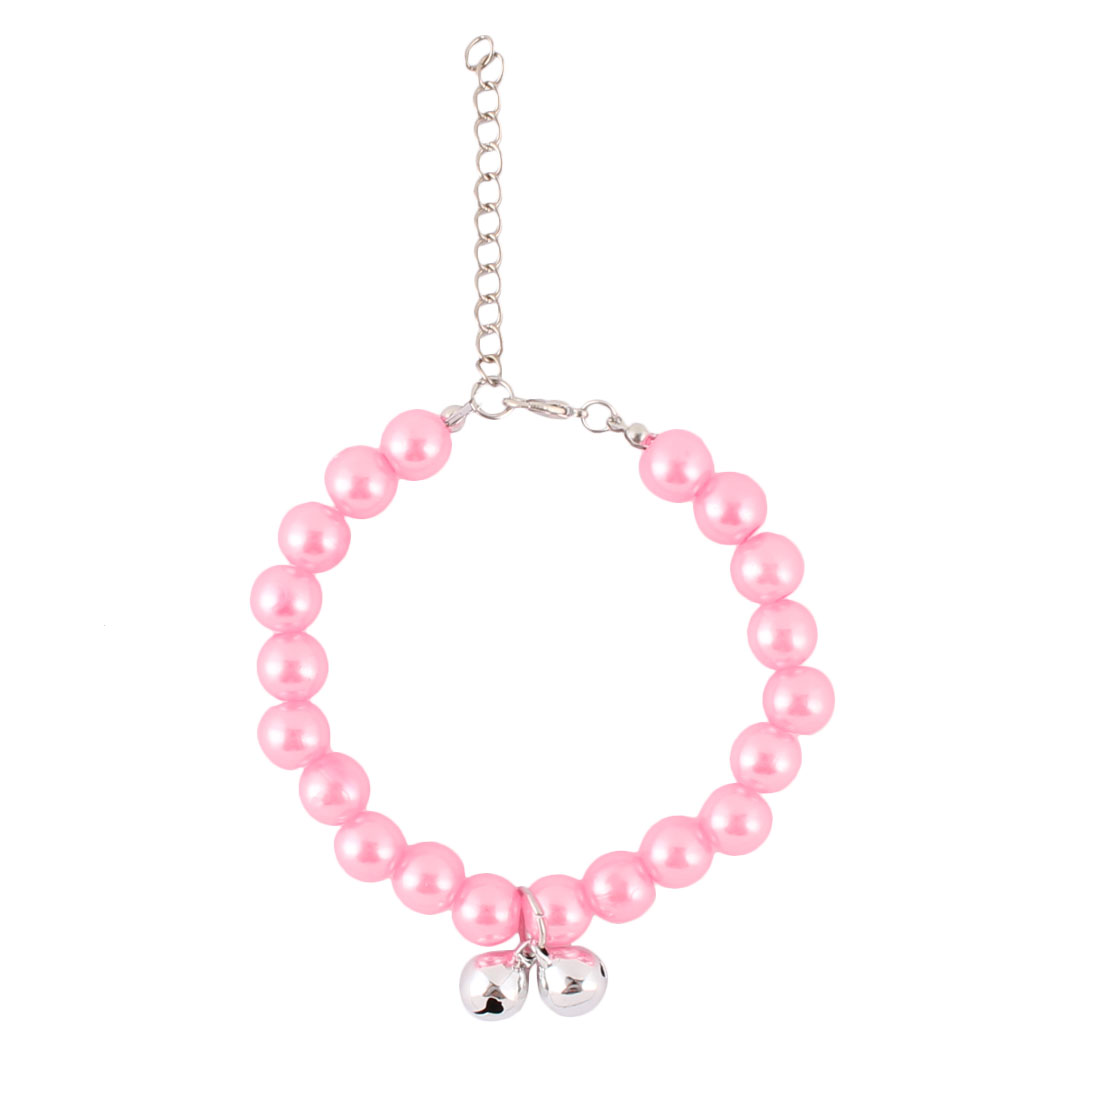 Outdoor Plastic Imitation Pearl Linked Round Beads Adjustable Clasp Bells Decor Pet Necklace Pink